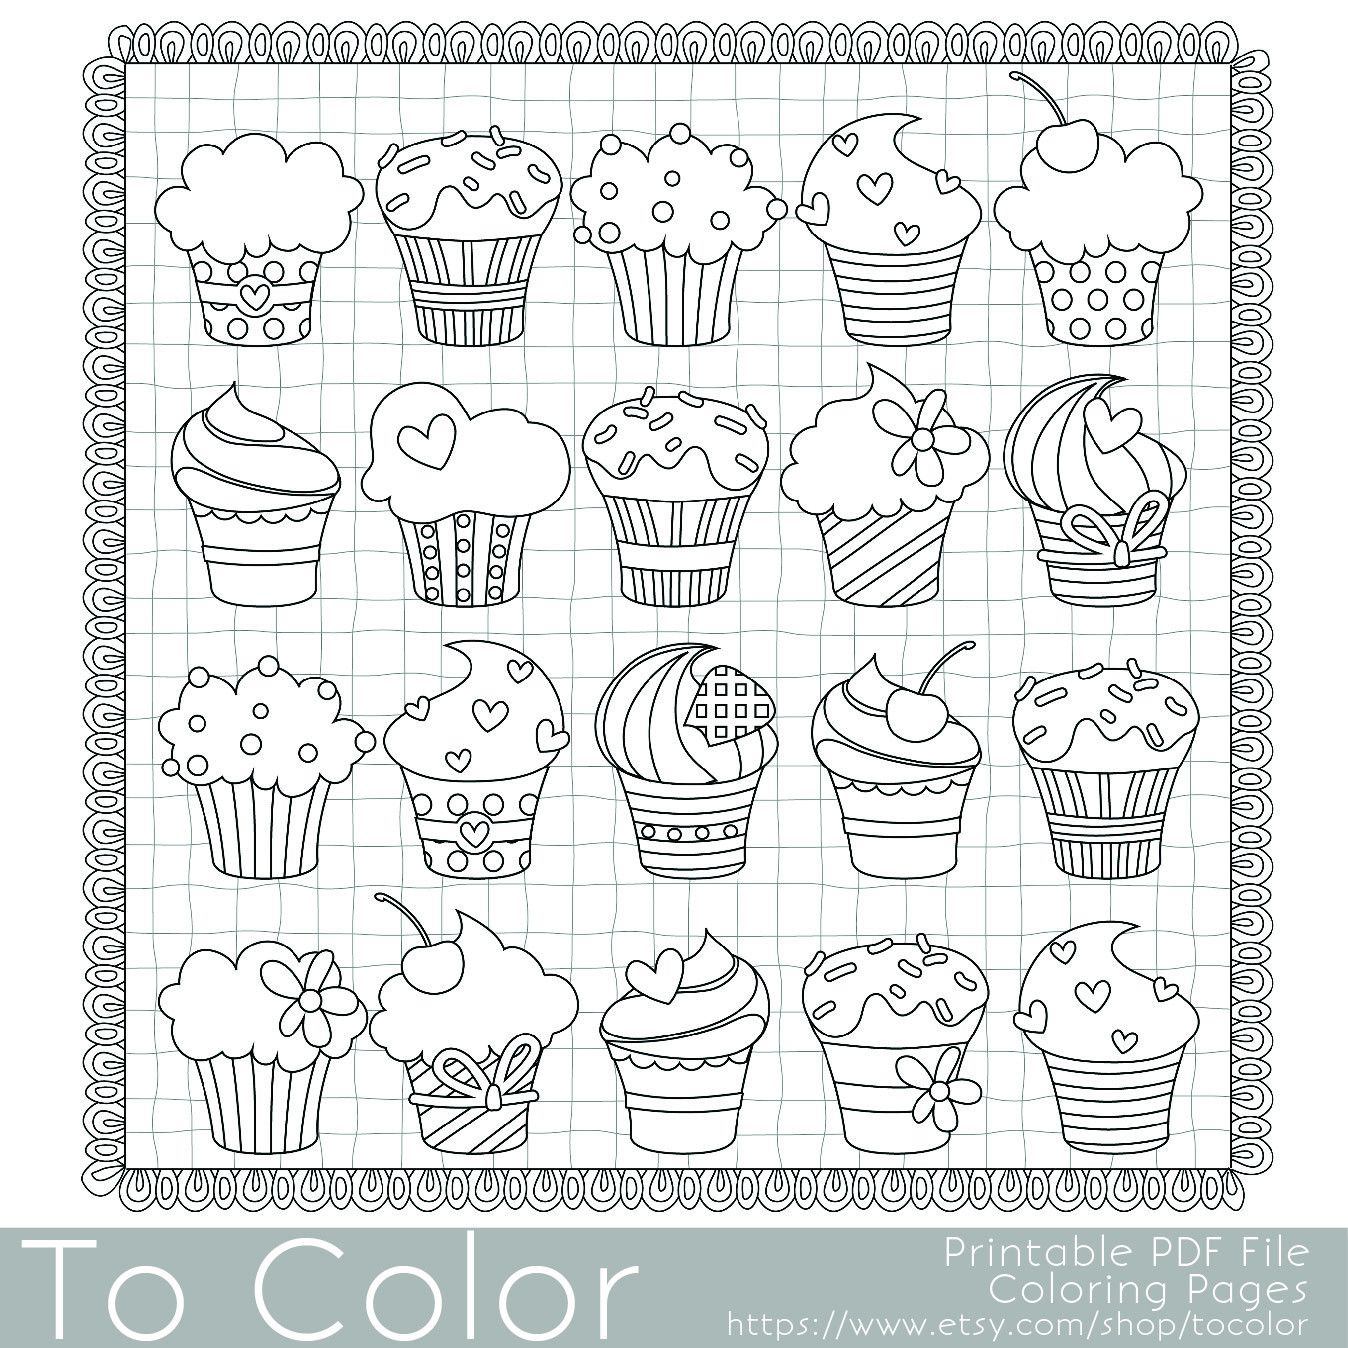 cupcakes coloring page this is a printable pdf coloring page